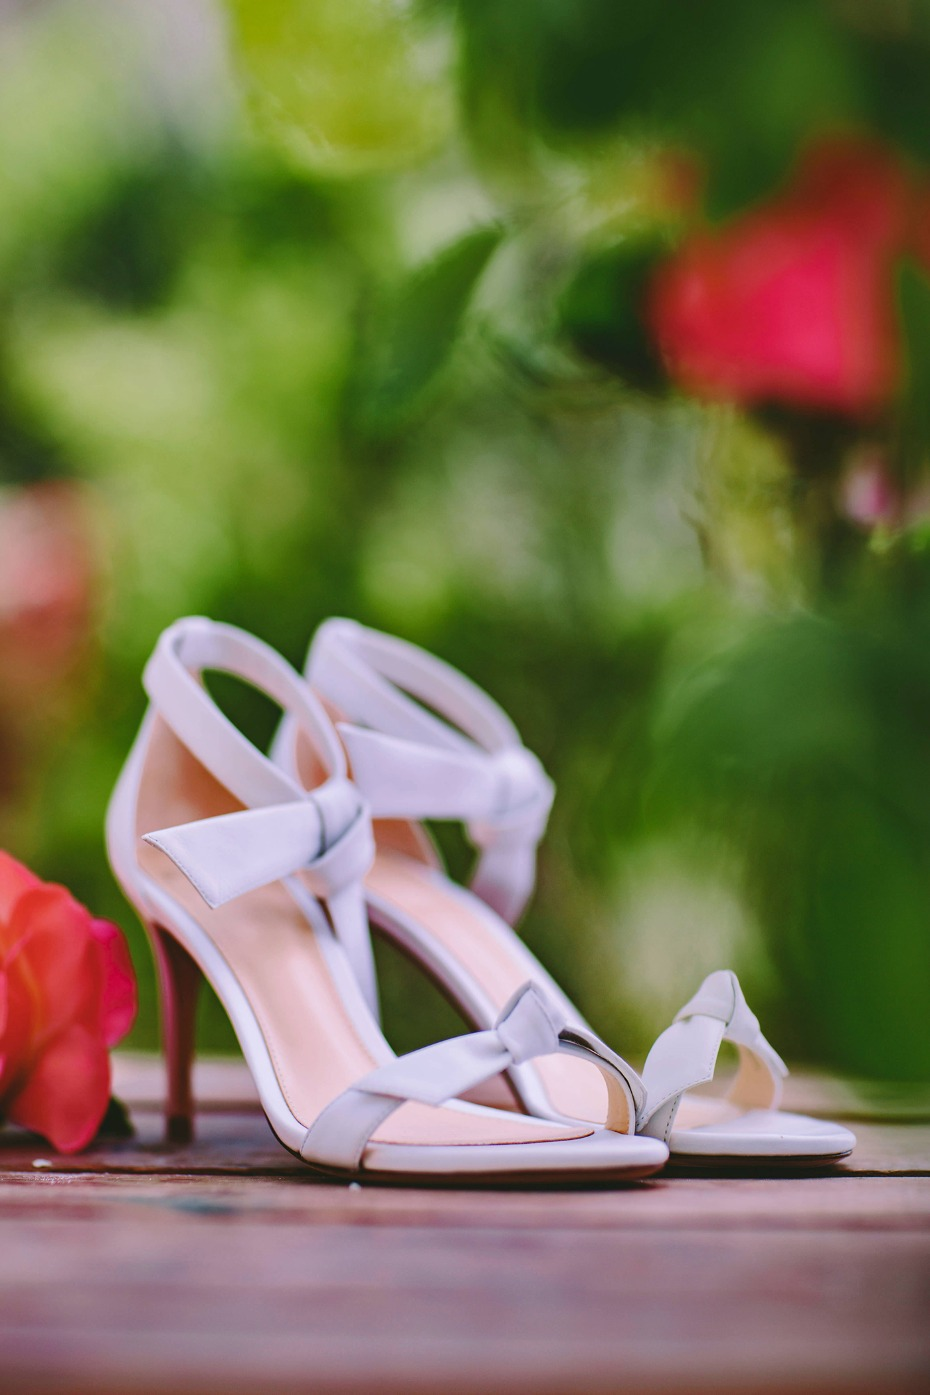 Pretty pumps for the bride